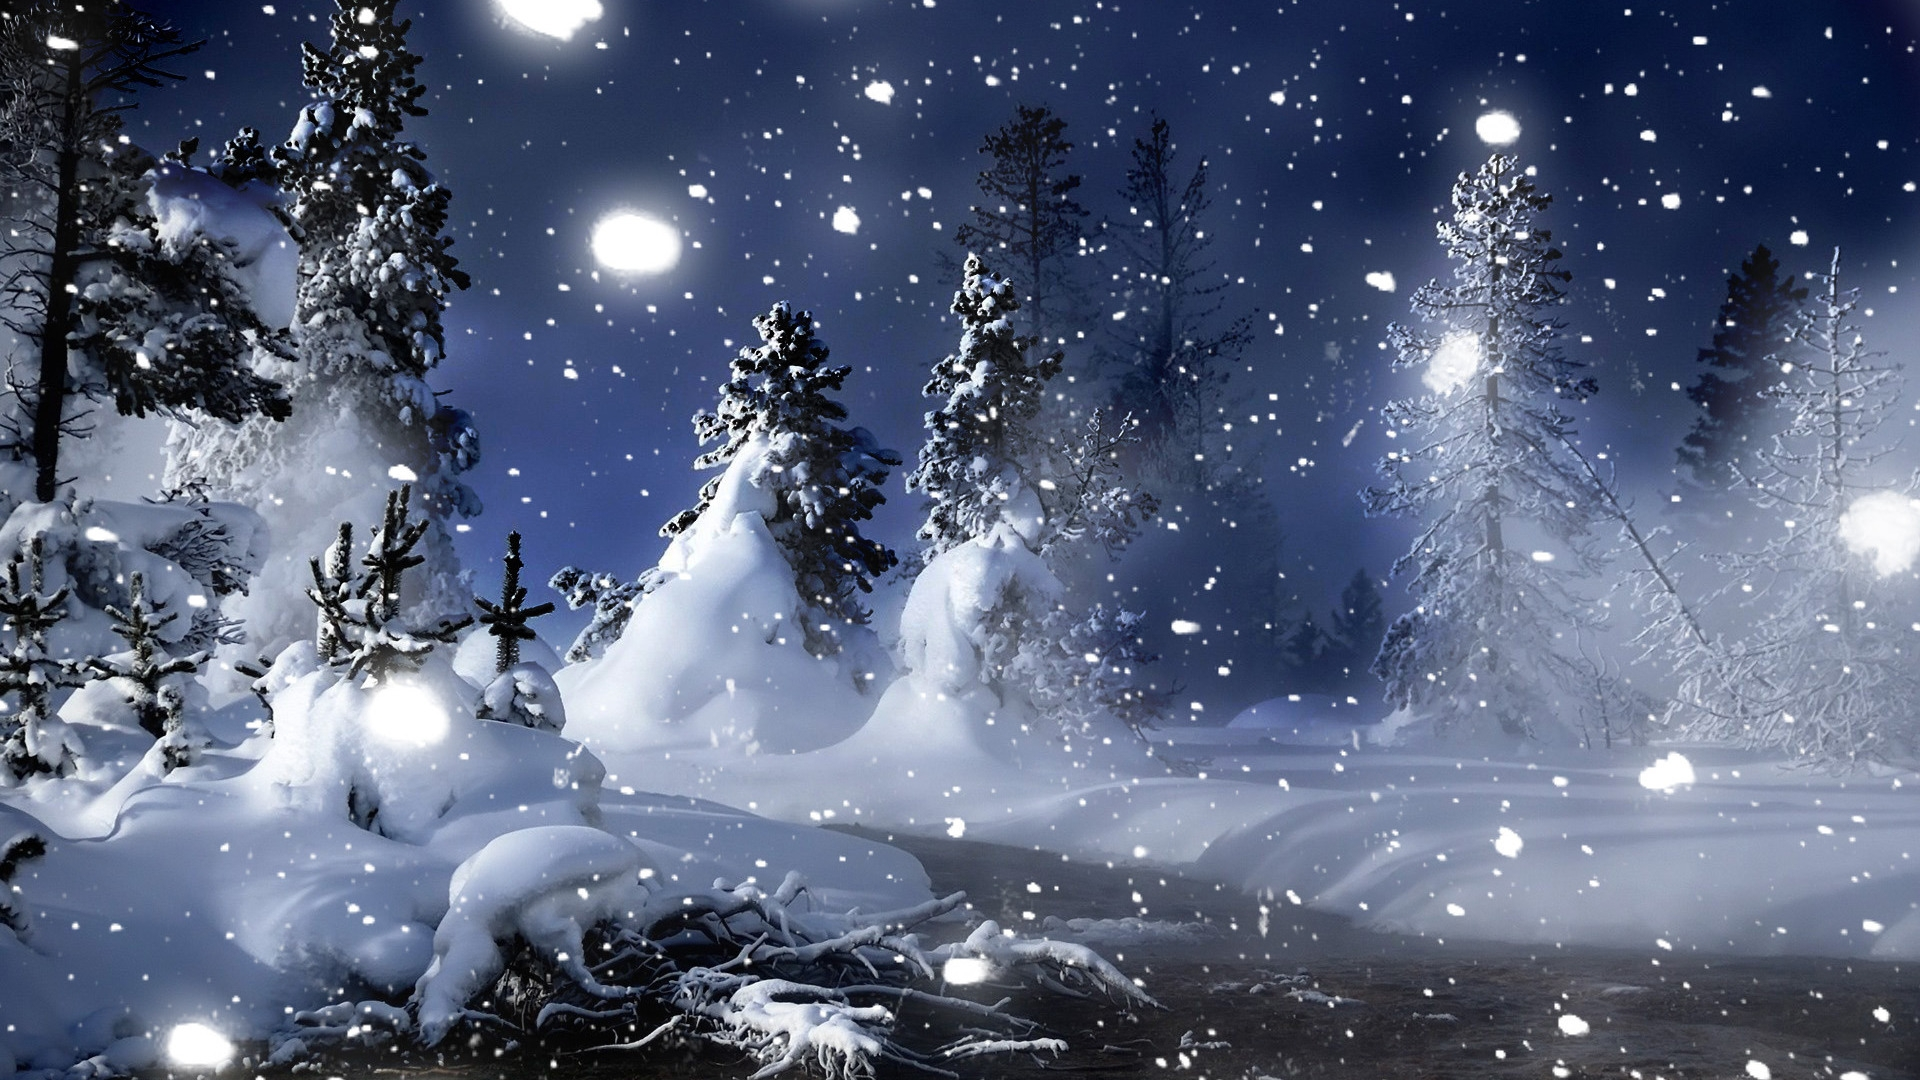 Winter Wallpapers HD 1920x1080